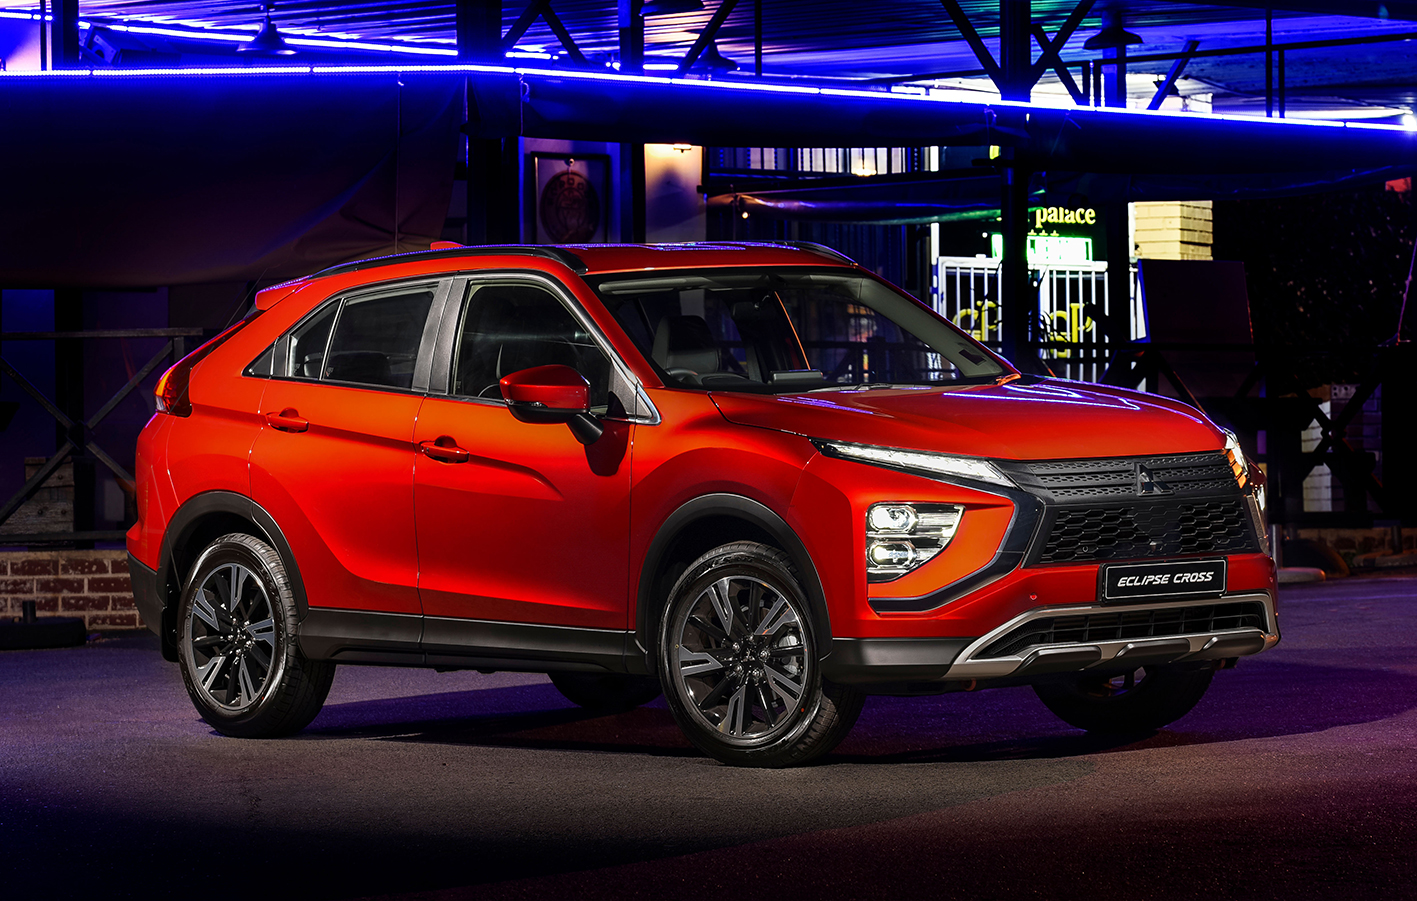 Eye-catching refreshed styling on the New Mitsubishi Eclipse Cross sets to take center stage in the compact SUV market